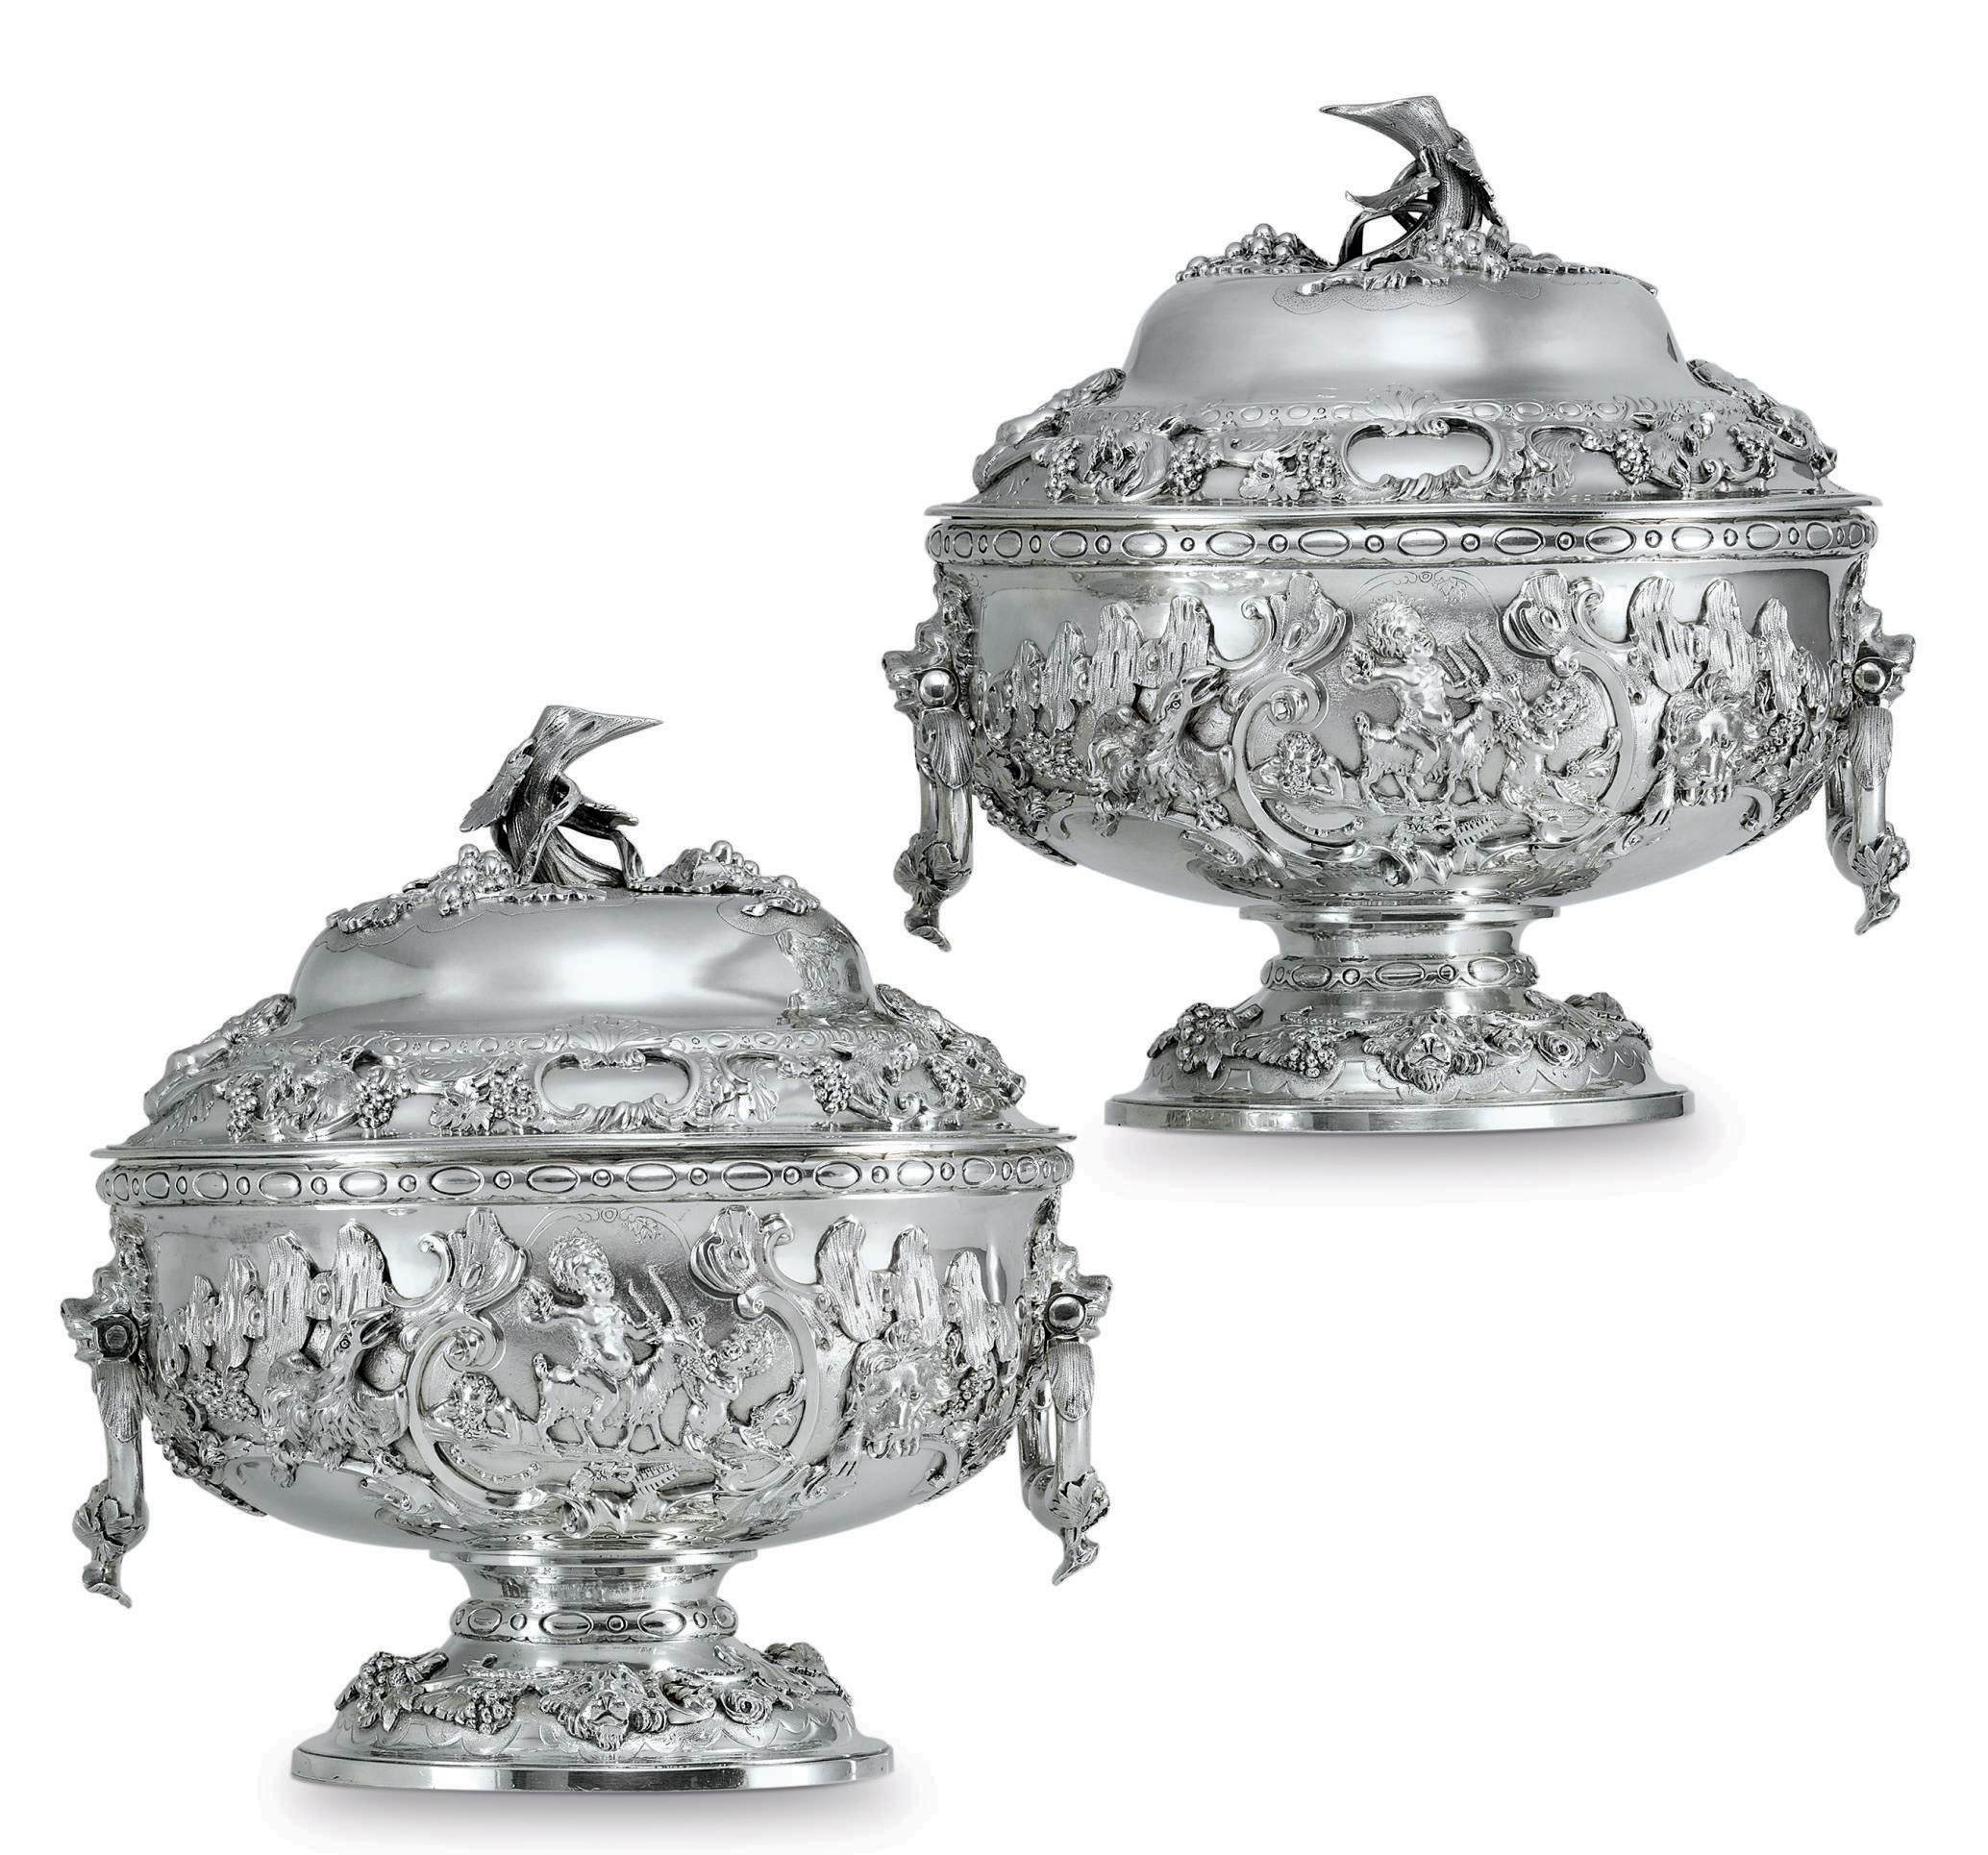 A PAIR OF REGENCY SILVER SOUP TUREENS